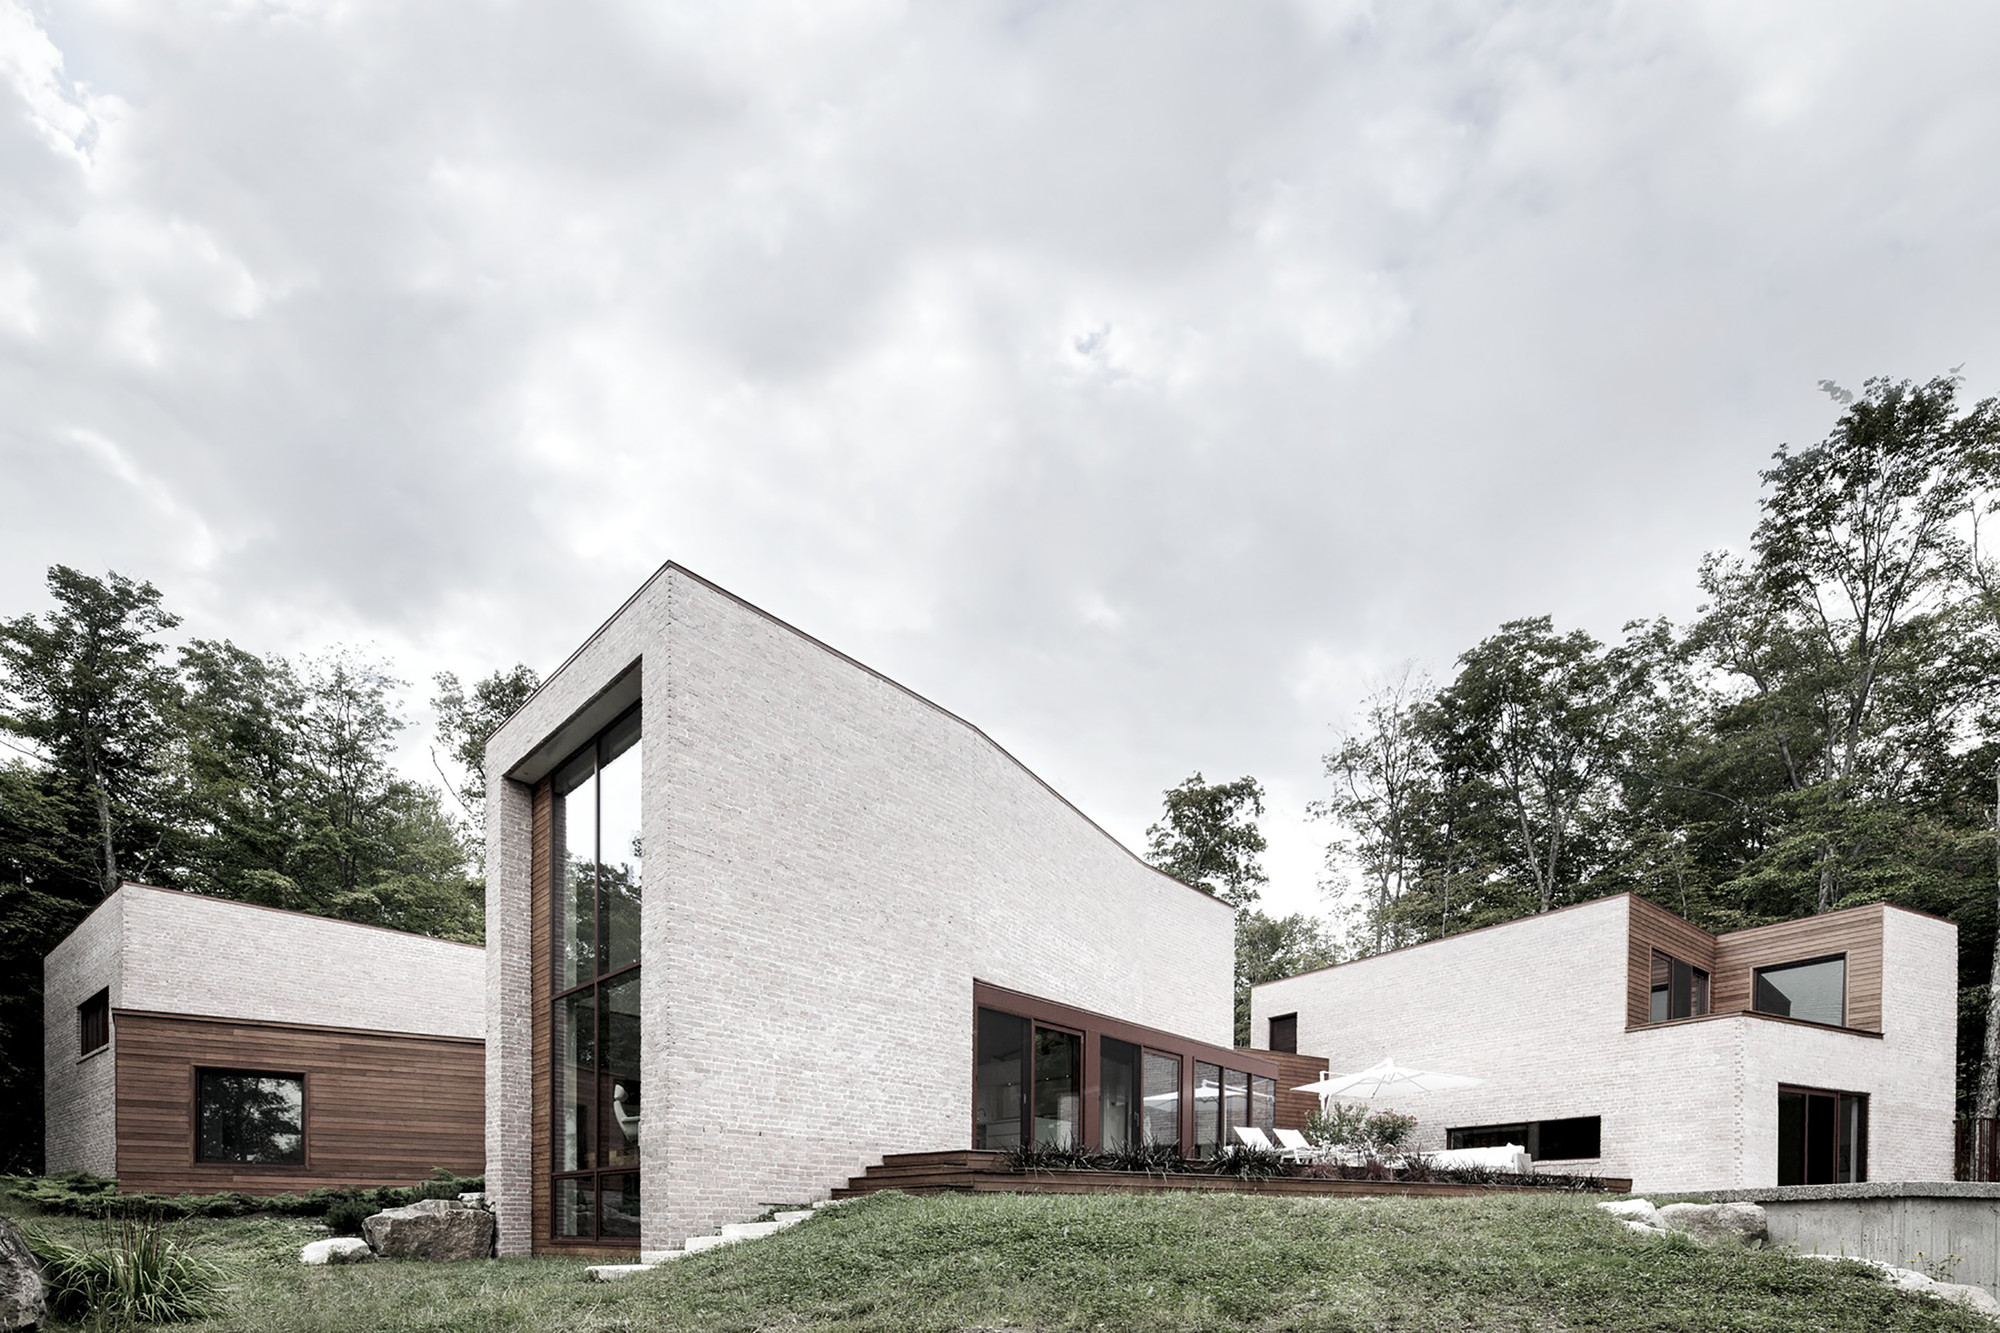 Les Elfes / Alain Carle Architecte, © Adrien Williams